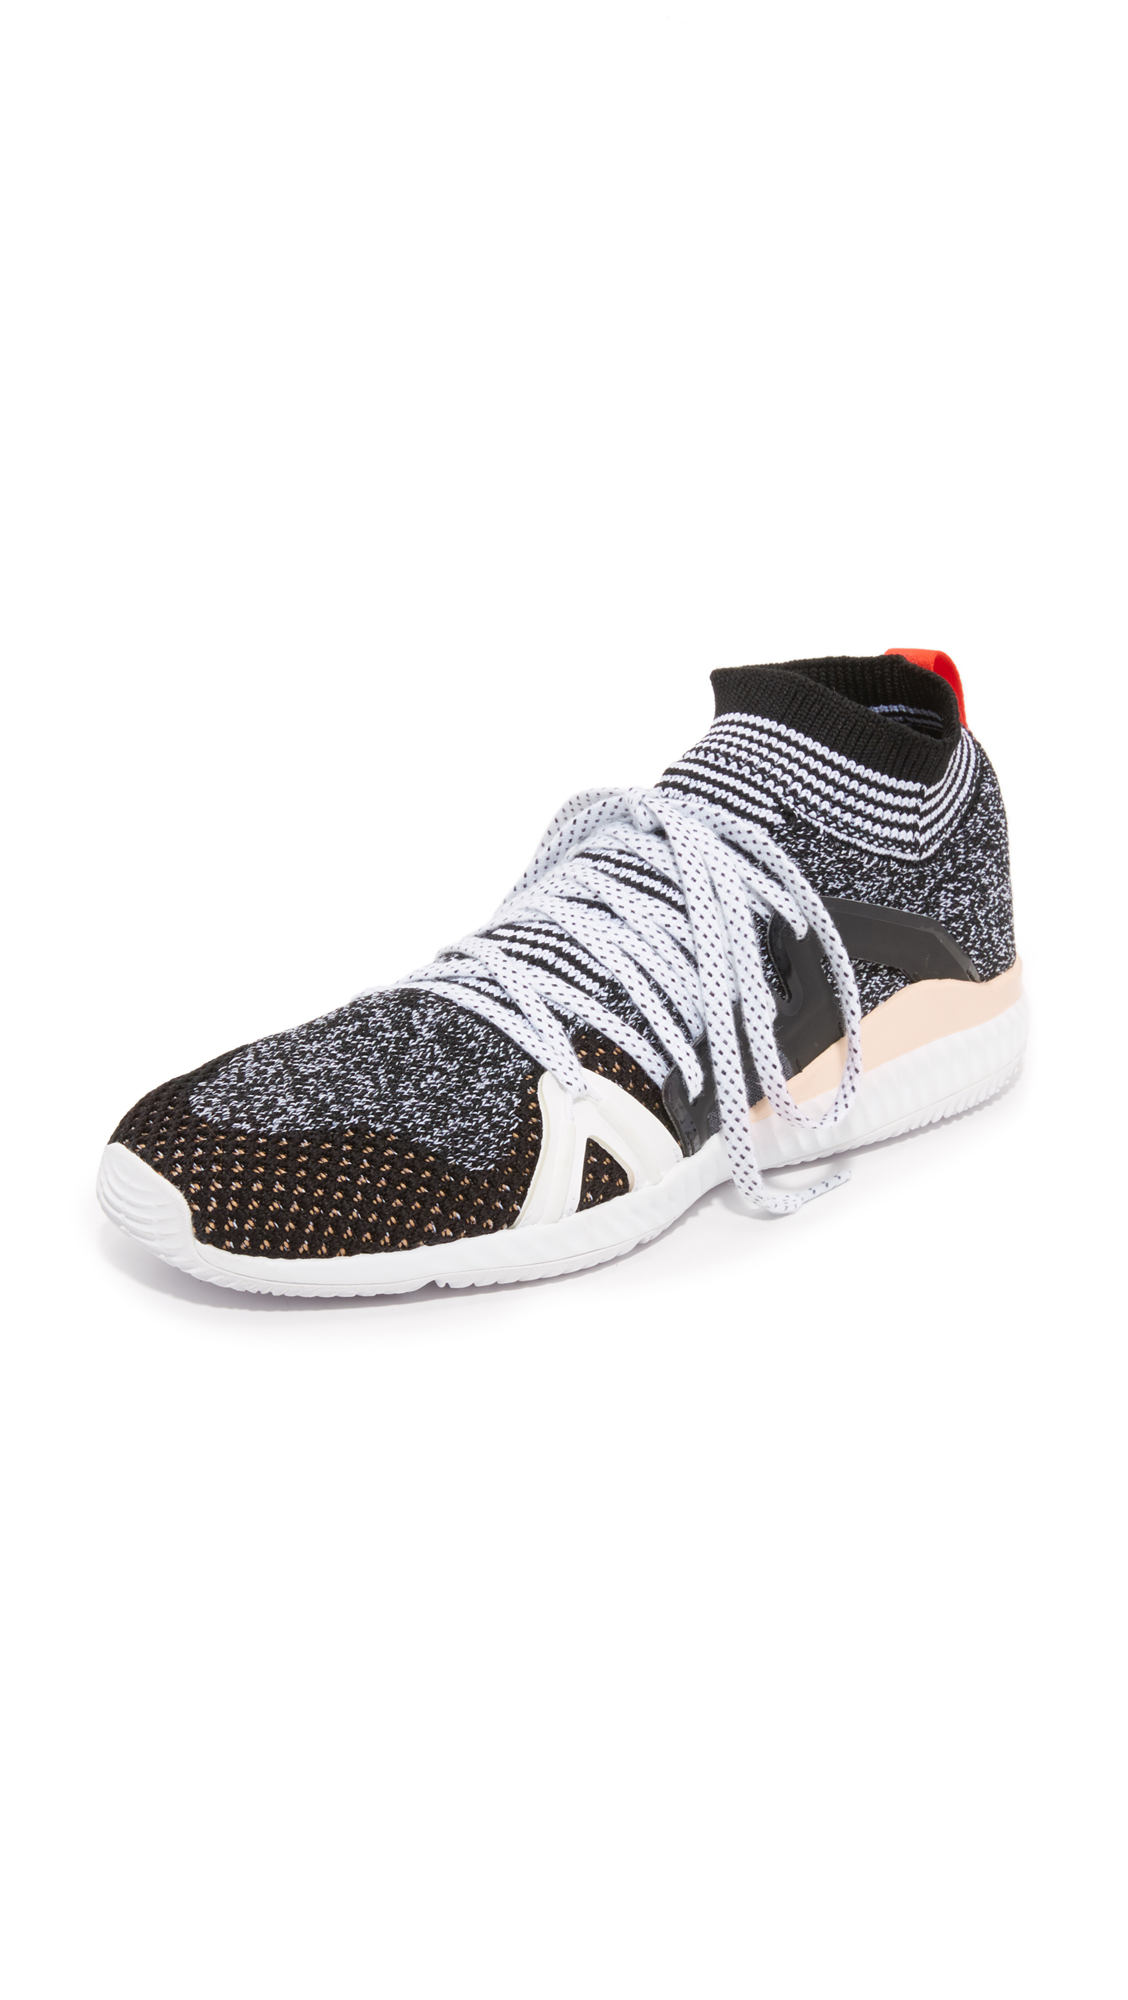 995bc8d9a adidas by Stella McCartney Edge Trainer Sneakers